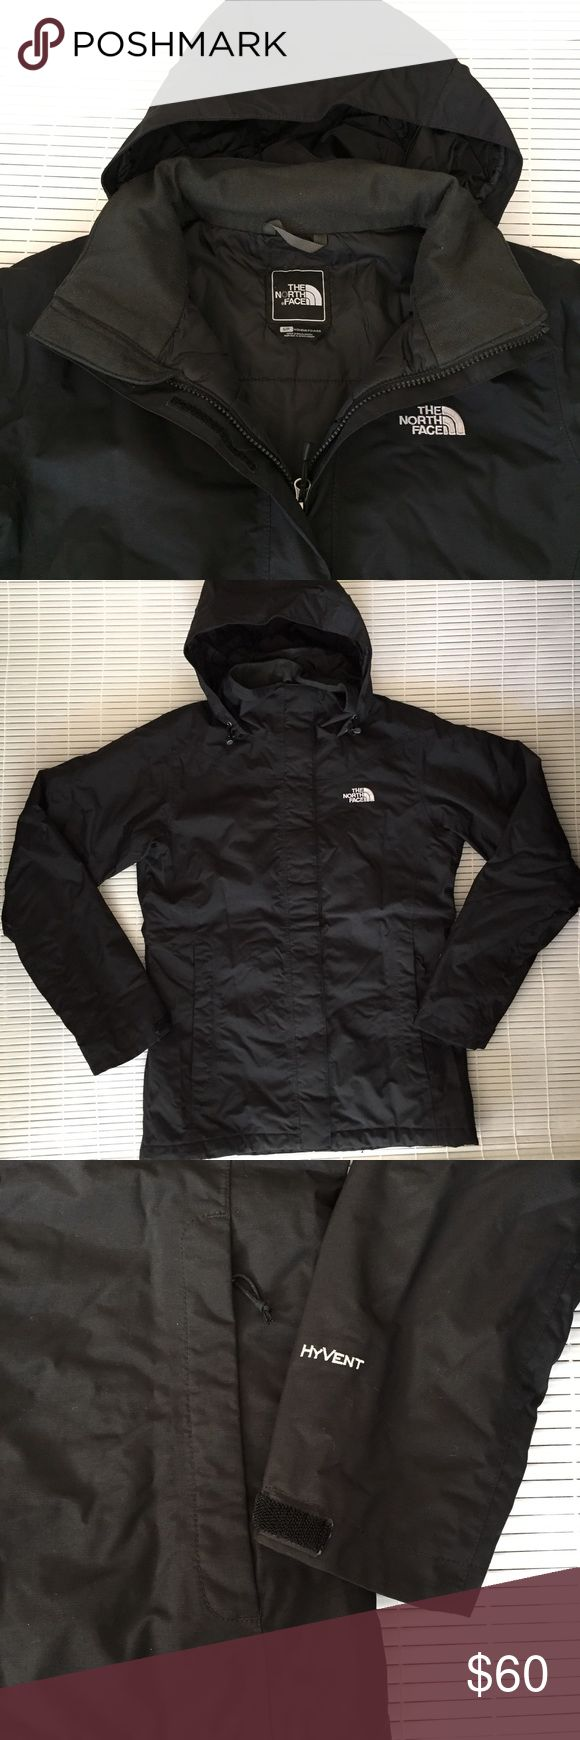 North Face Rain Jacket Lightly lined Hooded jacket, perfect for rain and mild climate. No flaws or damages. Purchased from North Face Outlet Store. North Face Jackets & Coats